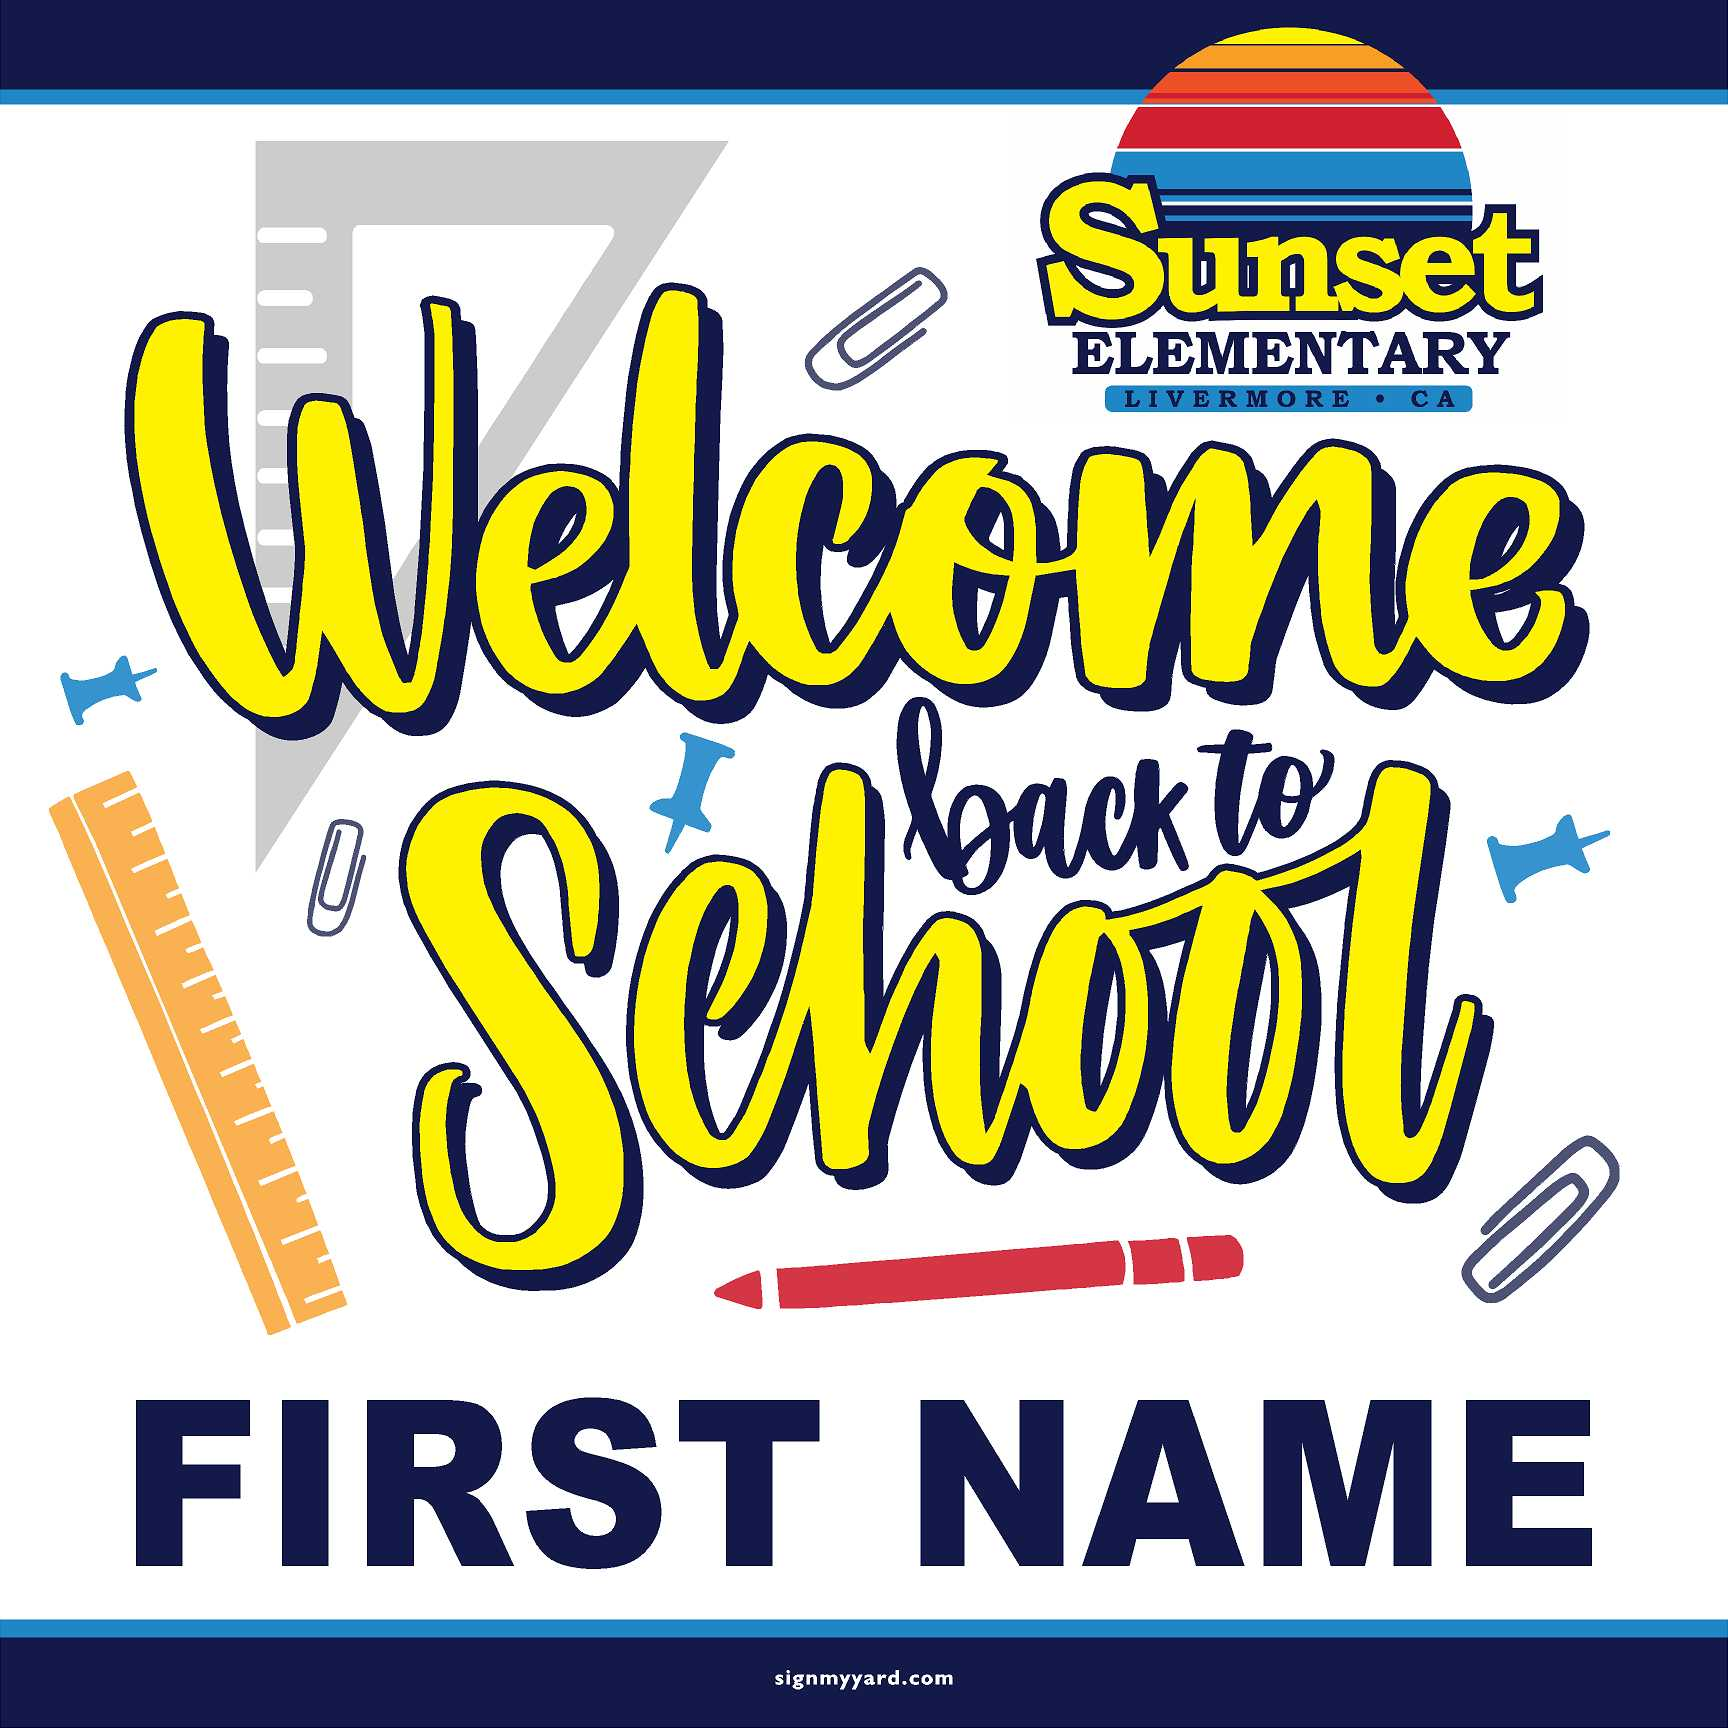 Sunset Elementary Generic WITH NAME Back to School 24x24 Yard Sign (includes installation in your yard)